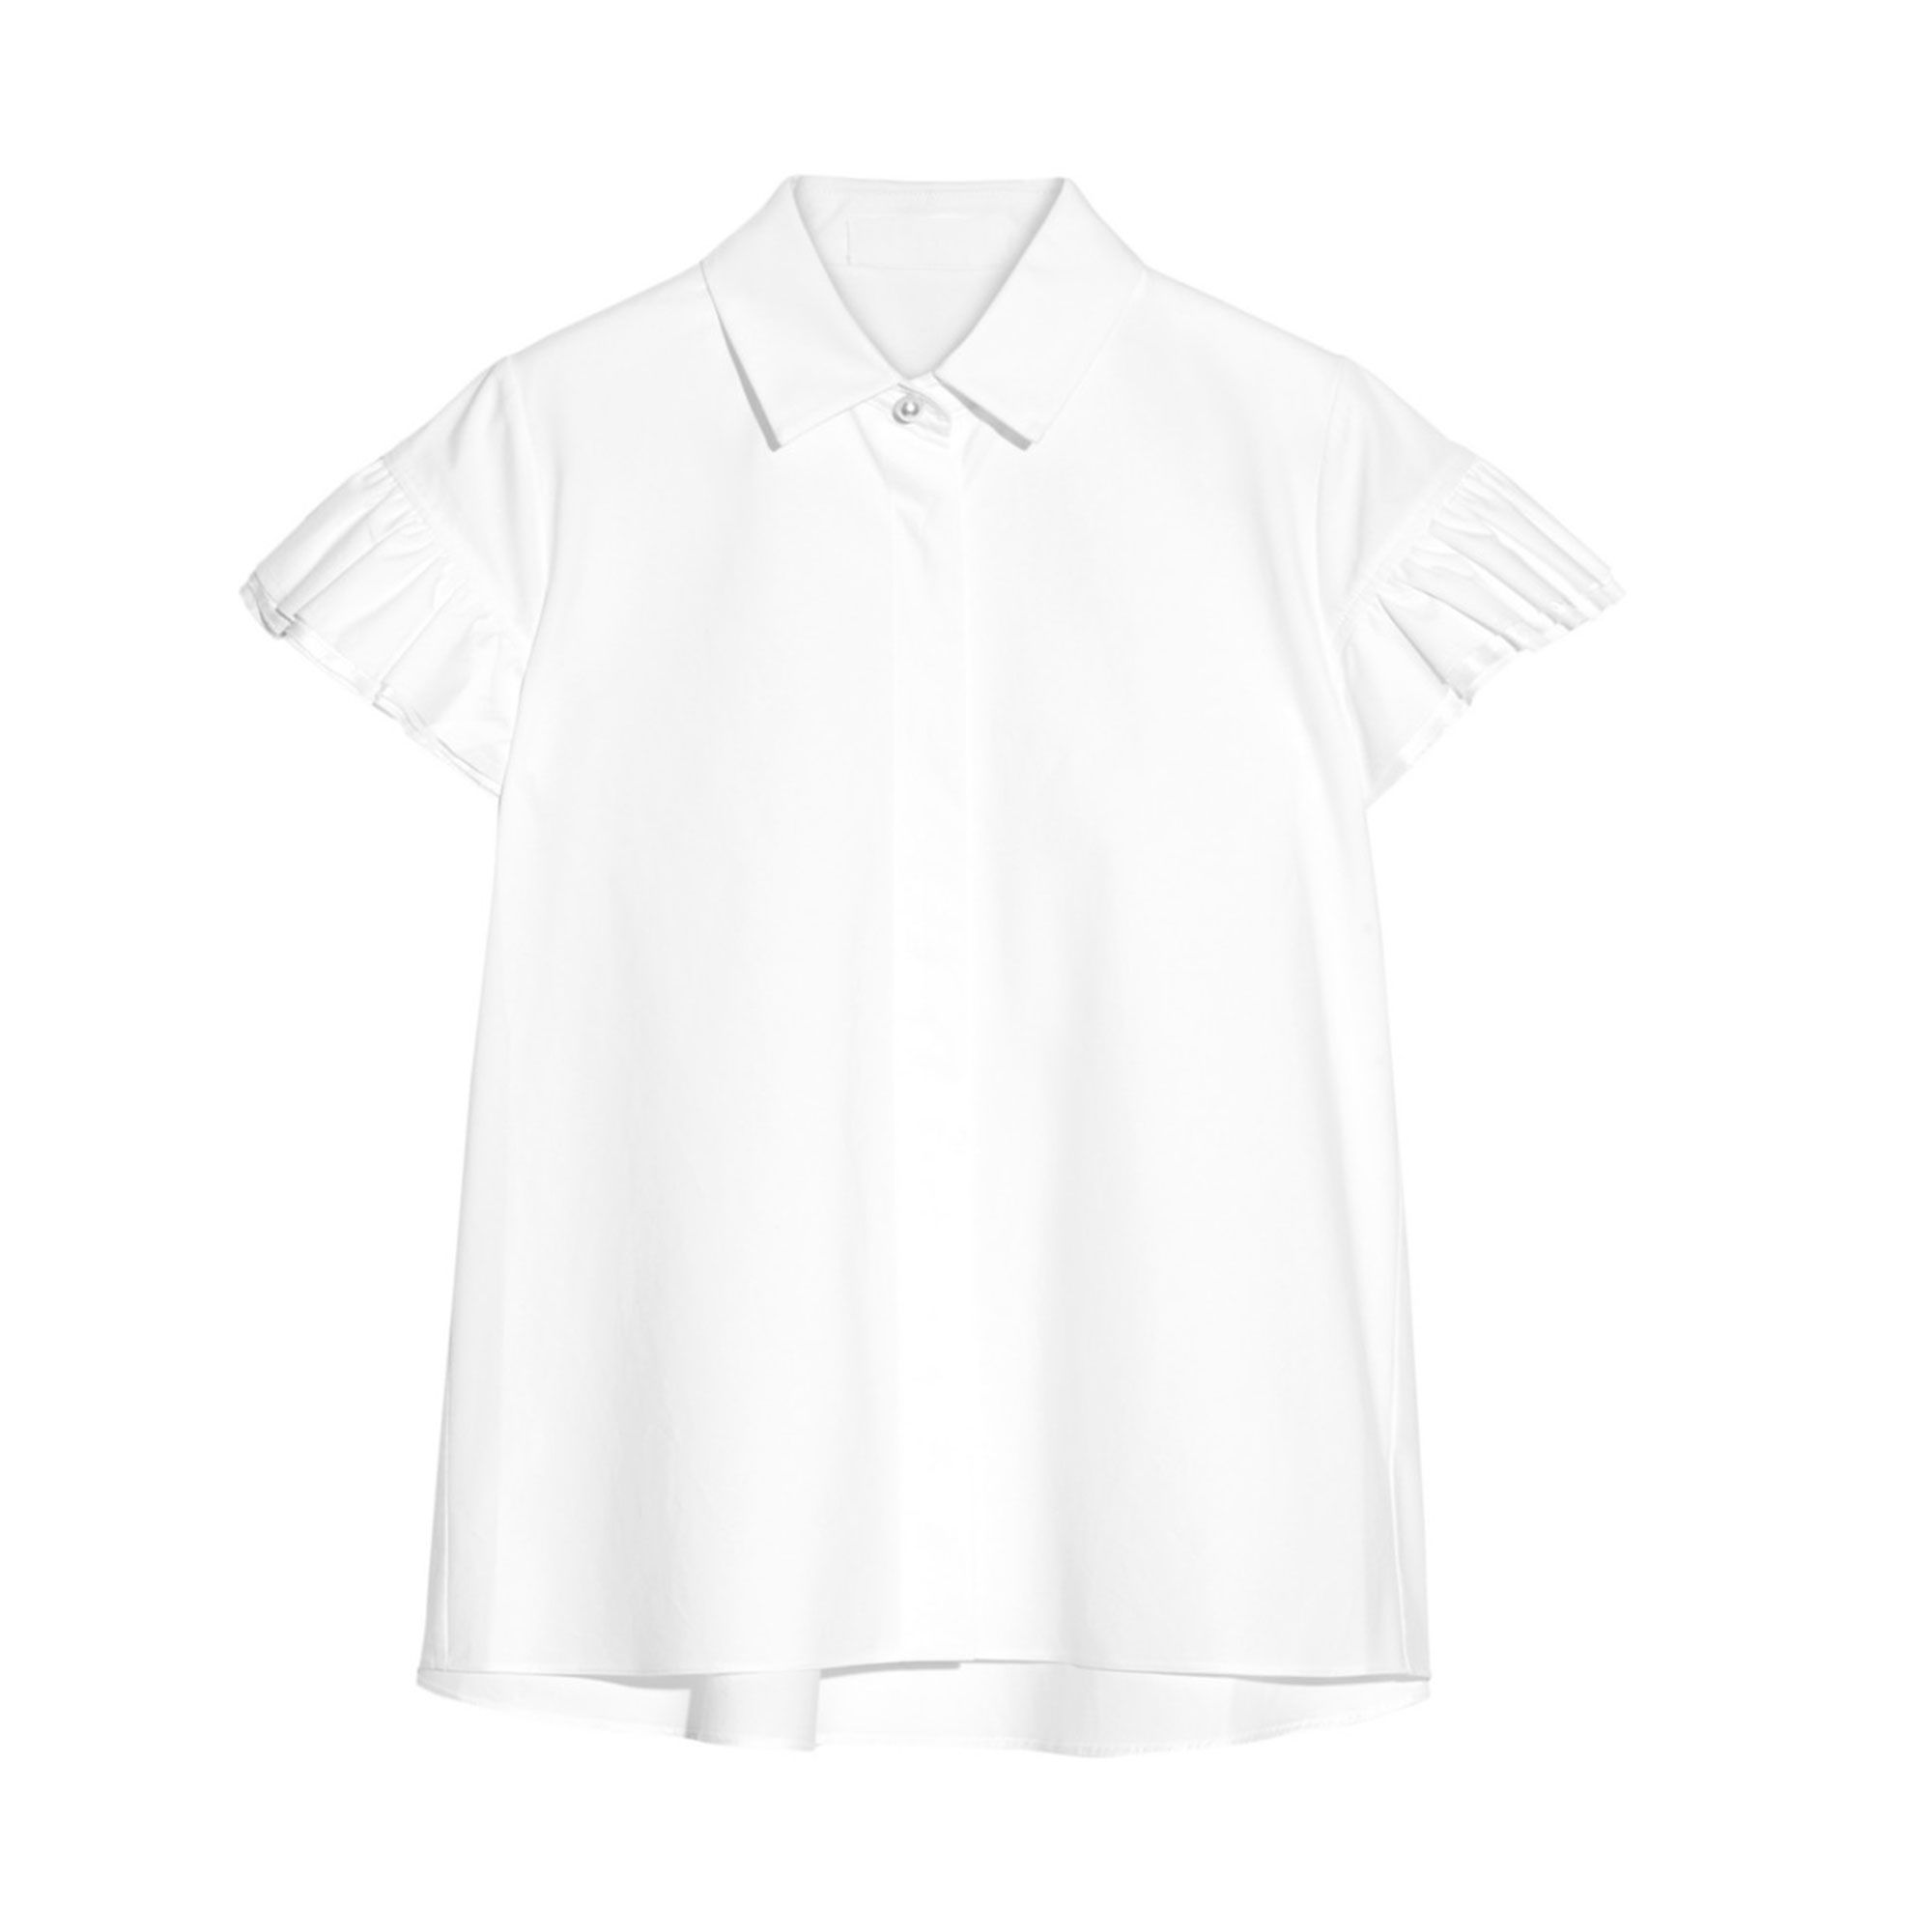 c2a3d2b9 The Best White Shirts To Snap Up Now - Best Subtle Details from InStyle.com